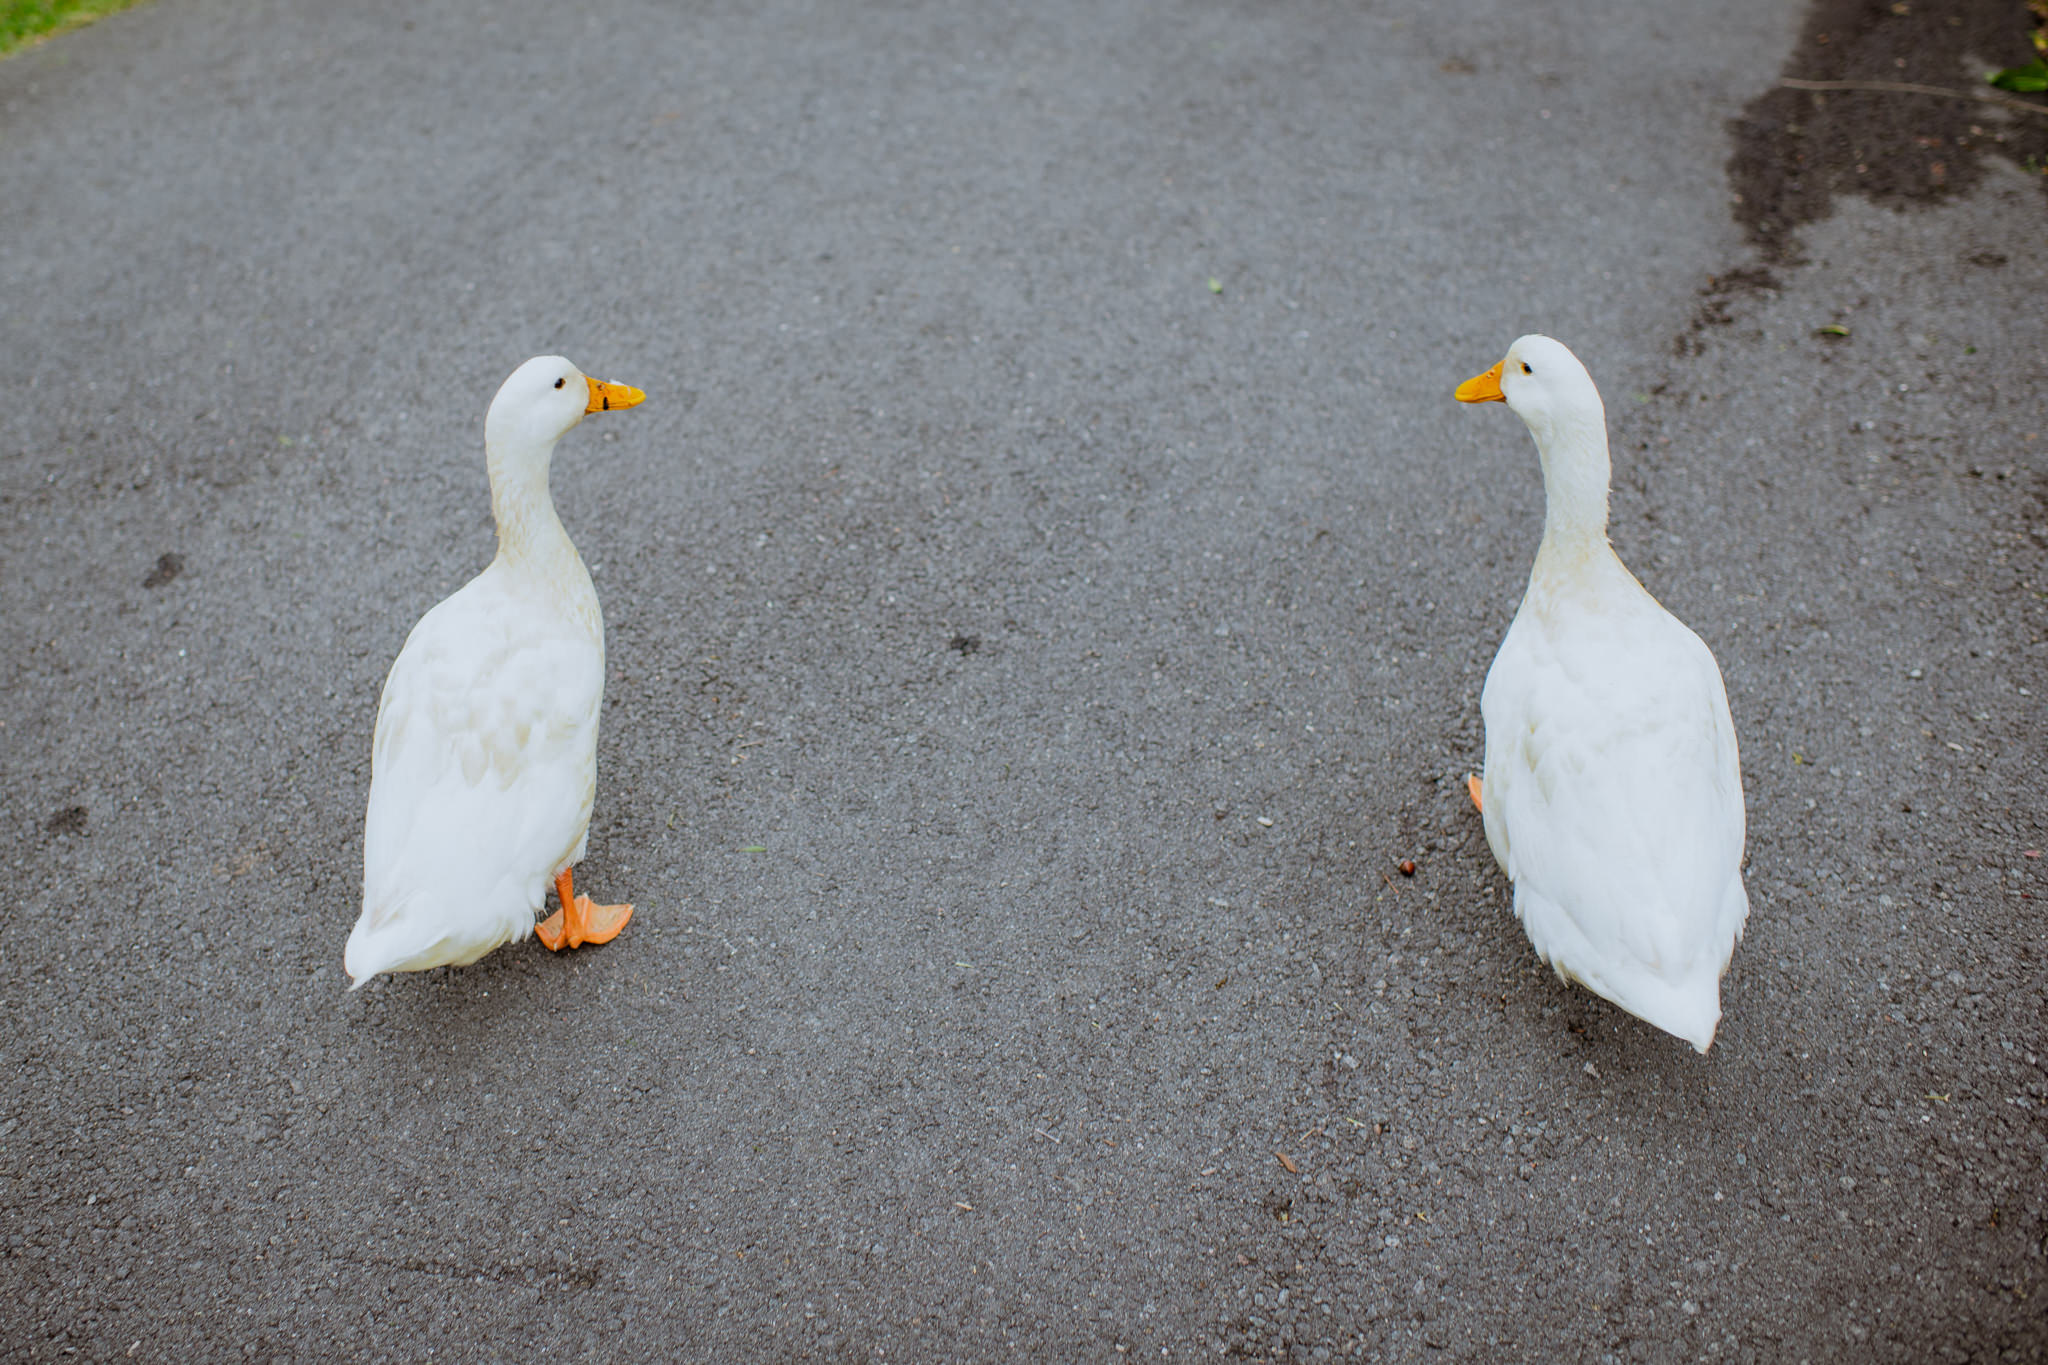 Two geese walk along a paved road